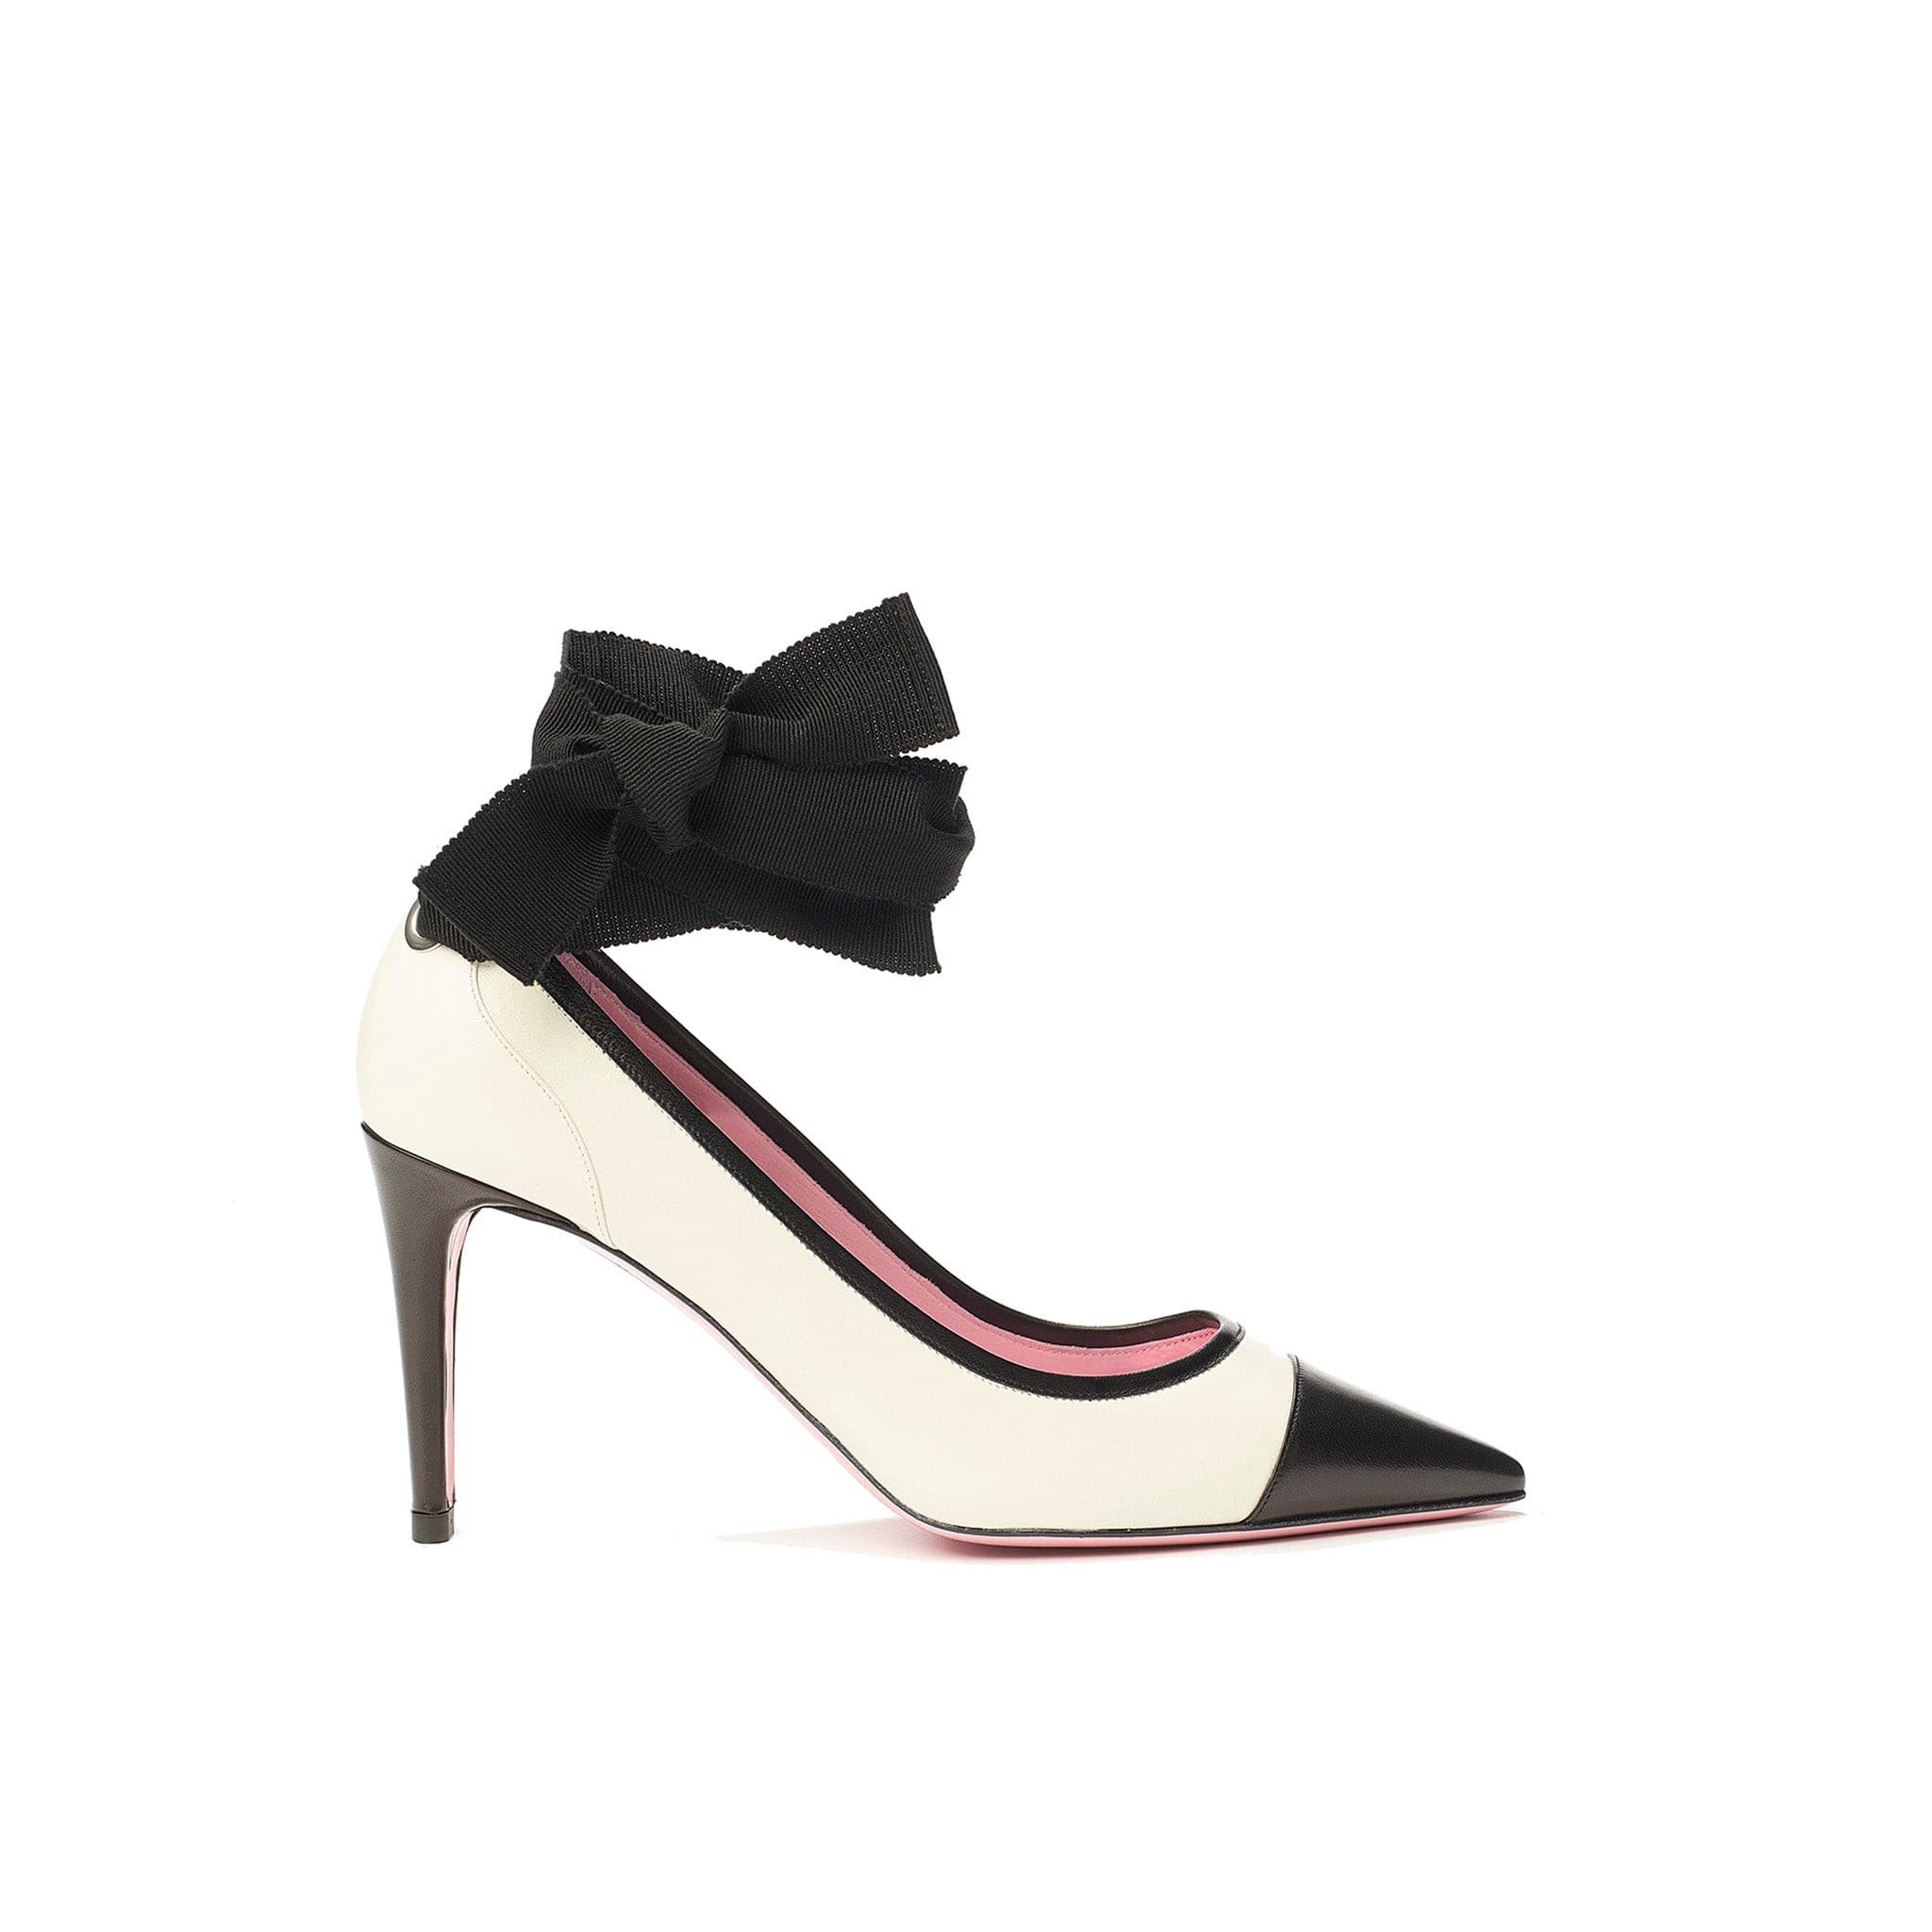 Ribbon tie pump in cream/black leather